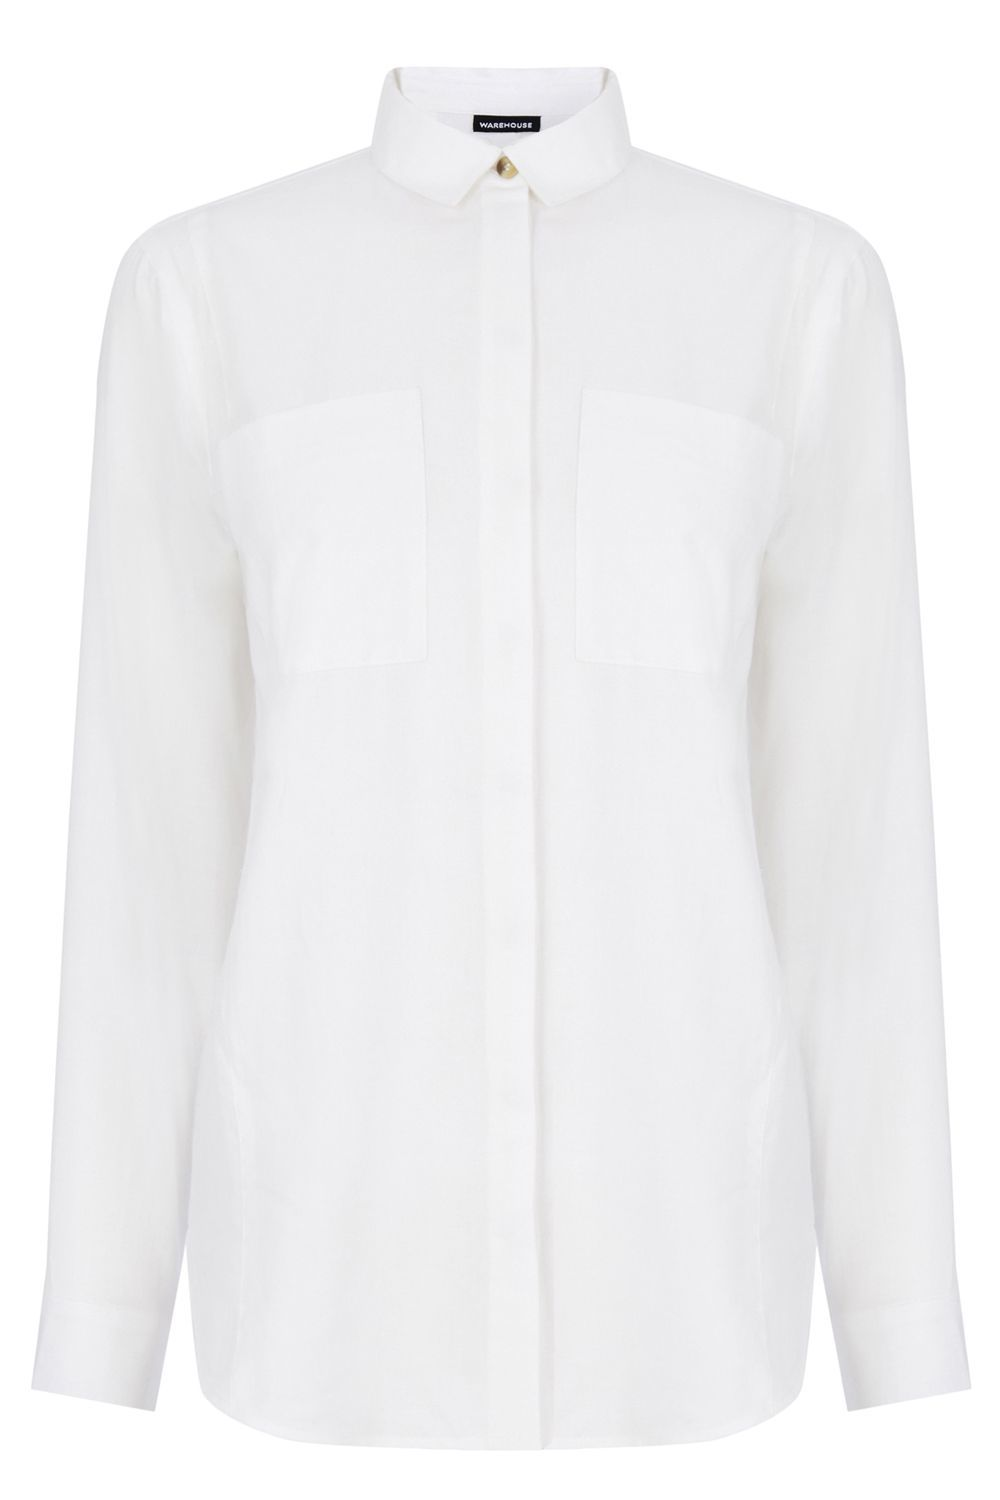 Relaxed Curved Hem Shirt, White - neckline: shirt collar/peter pan/zip with opening; pattern: plain; style: shirt; predominant colour: white; occasions: casual; length: standard; fibres: cotton - 100%; fit: body skimming; sleeve length: long sleeve; sleeve style: standard; texture group: crepes; bust detail: bulky details at bust; pattern type: fabric; season: s/s 2016; wardrobe: basic